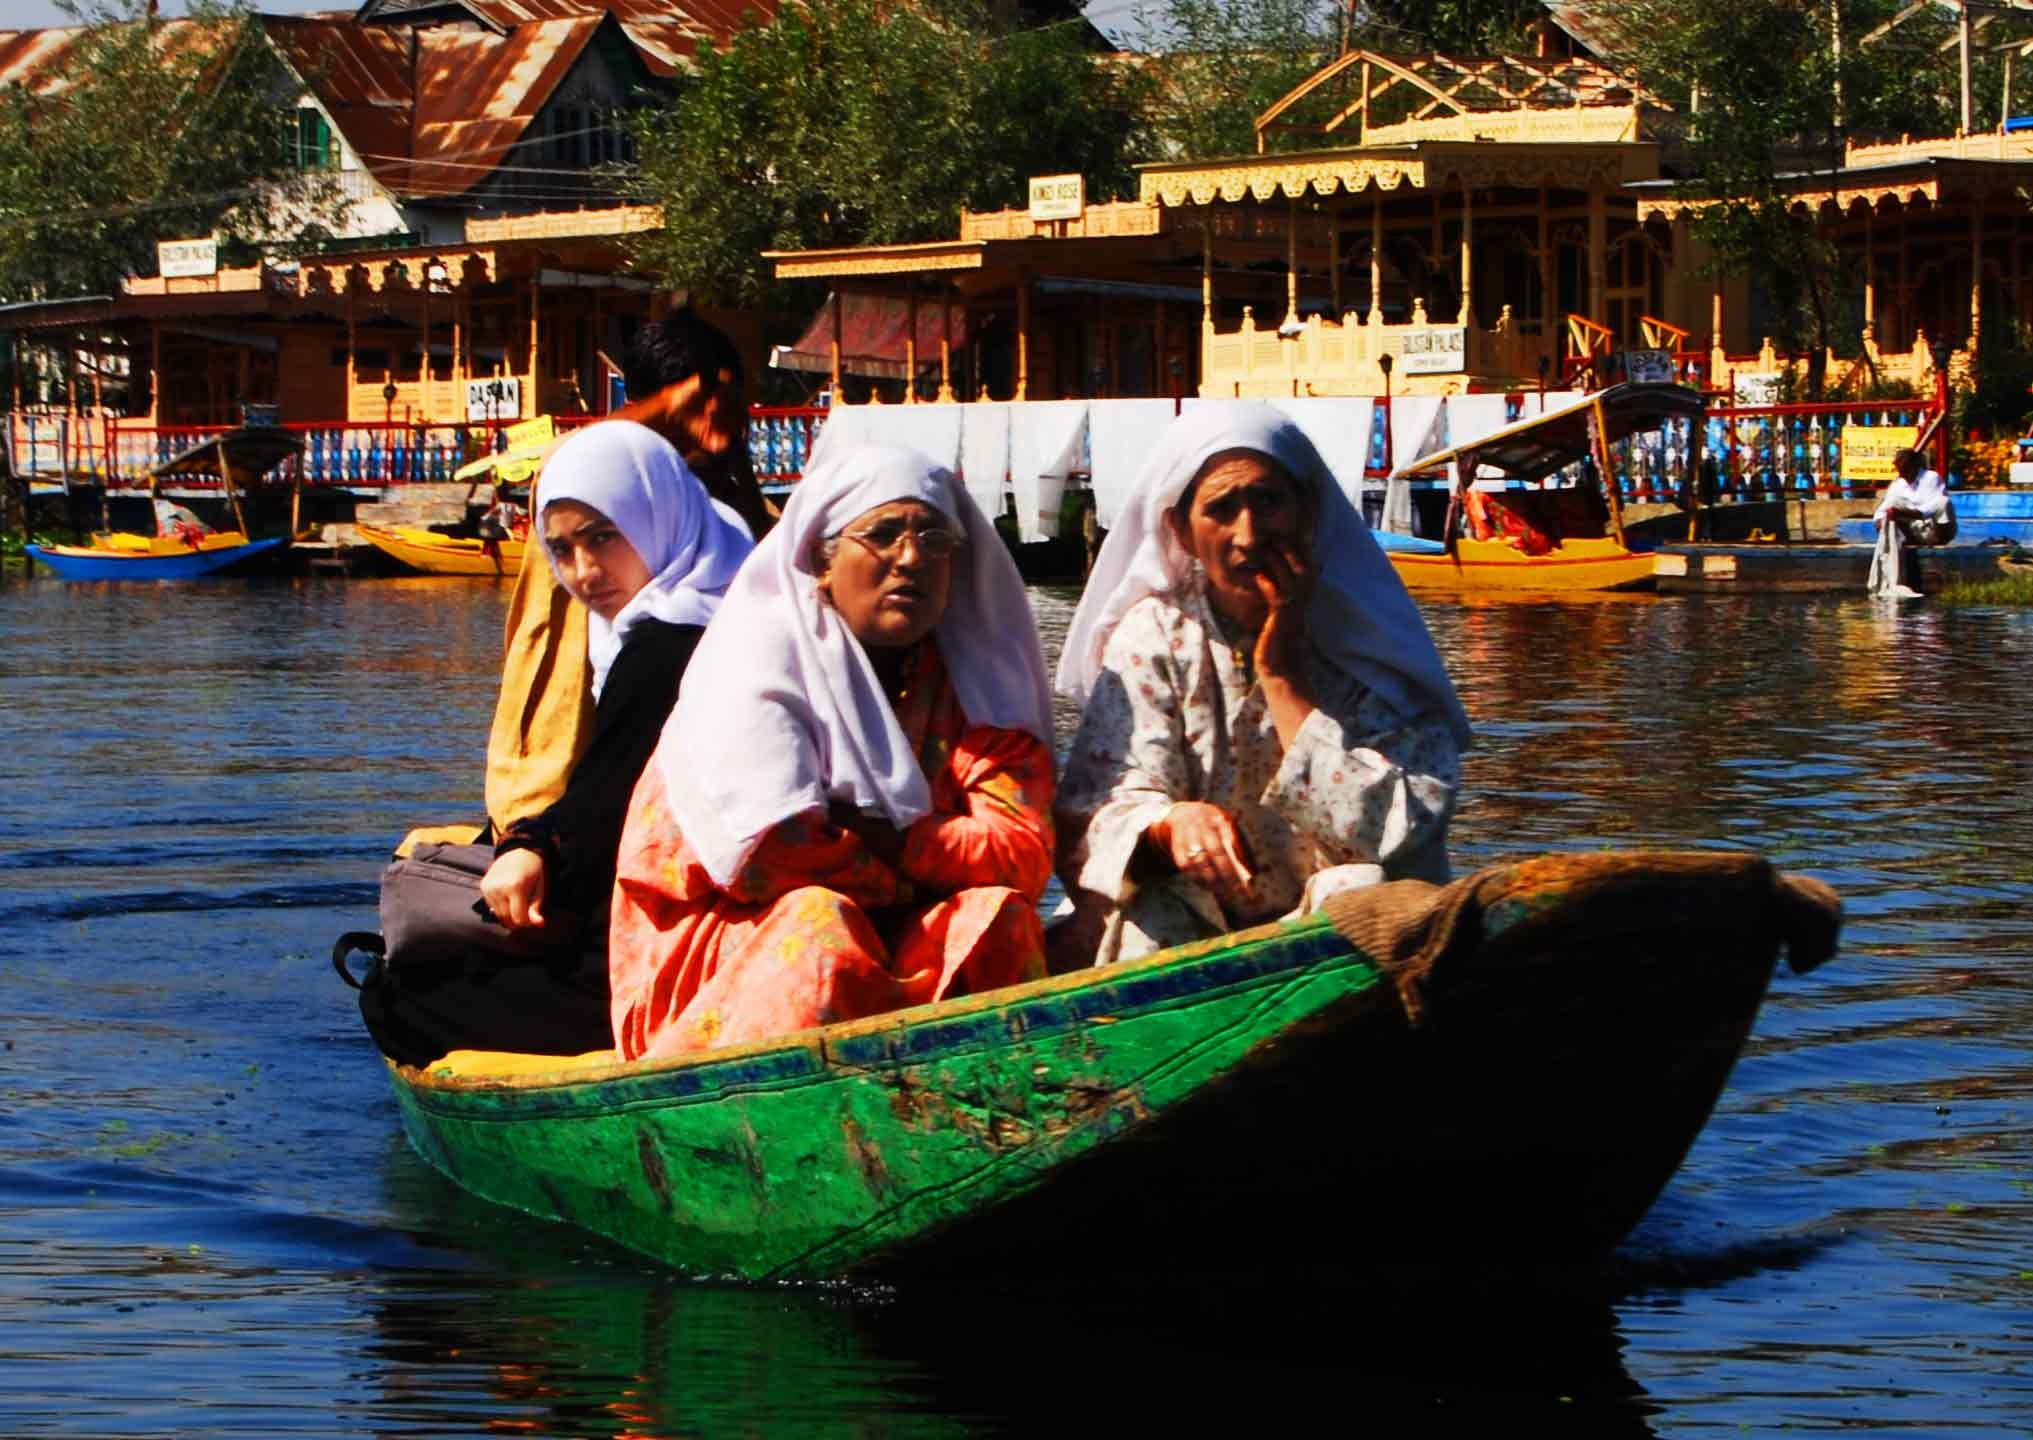 Canale Floating markets of Srinagar